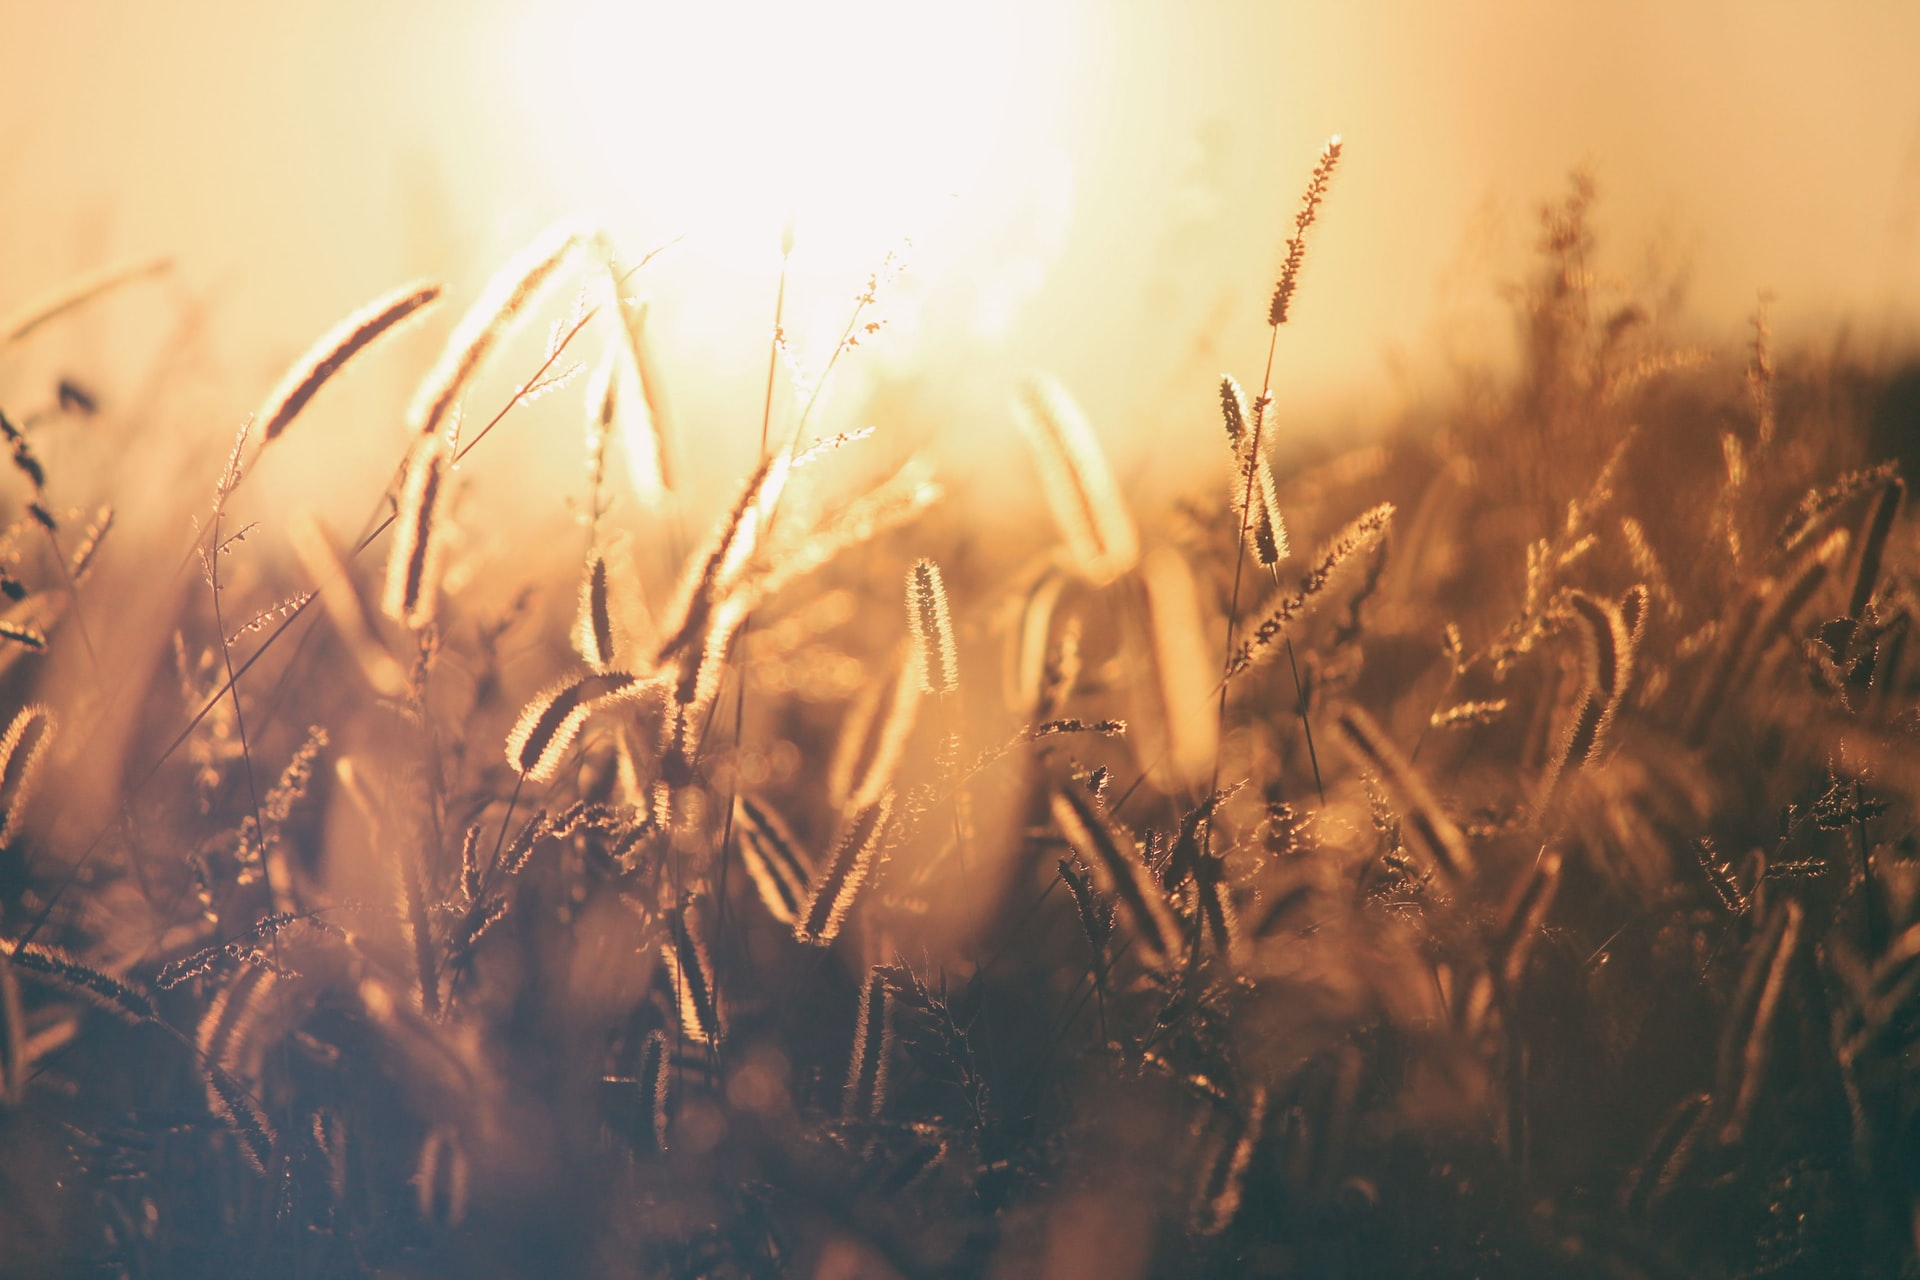 a picture of a grain field with the sun behind it to symbolize the harvest of the firstfruits